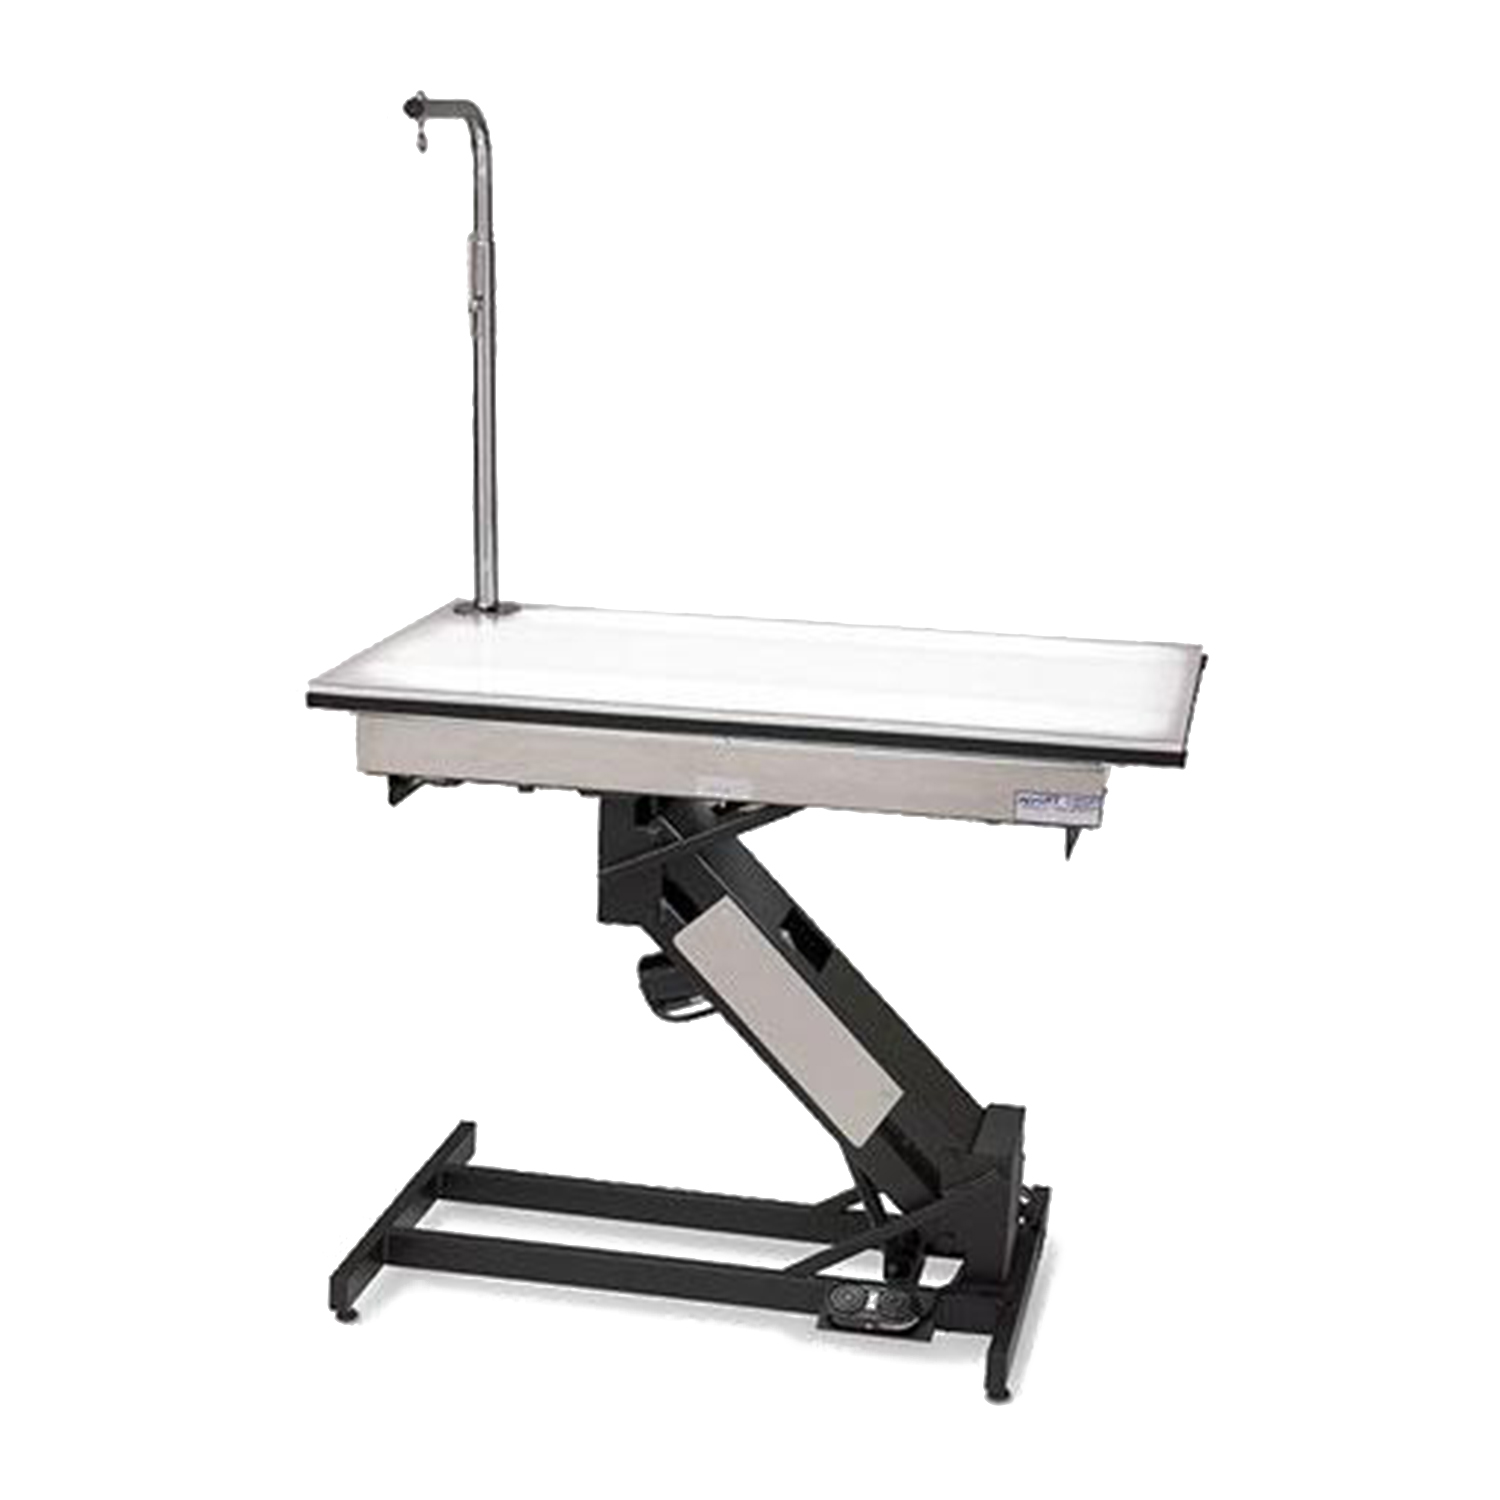 Avante GVT 1400 LowRider: Masterlift Electric Lighted Fixed Top Grooming Table